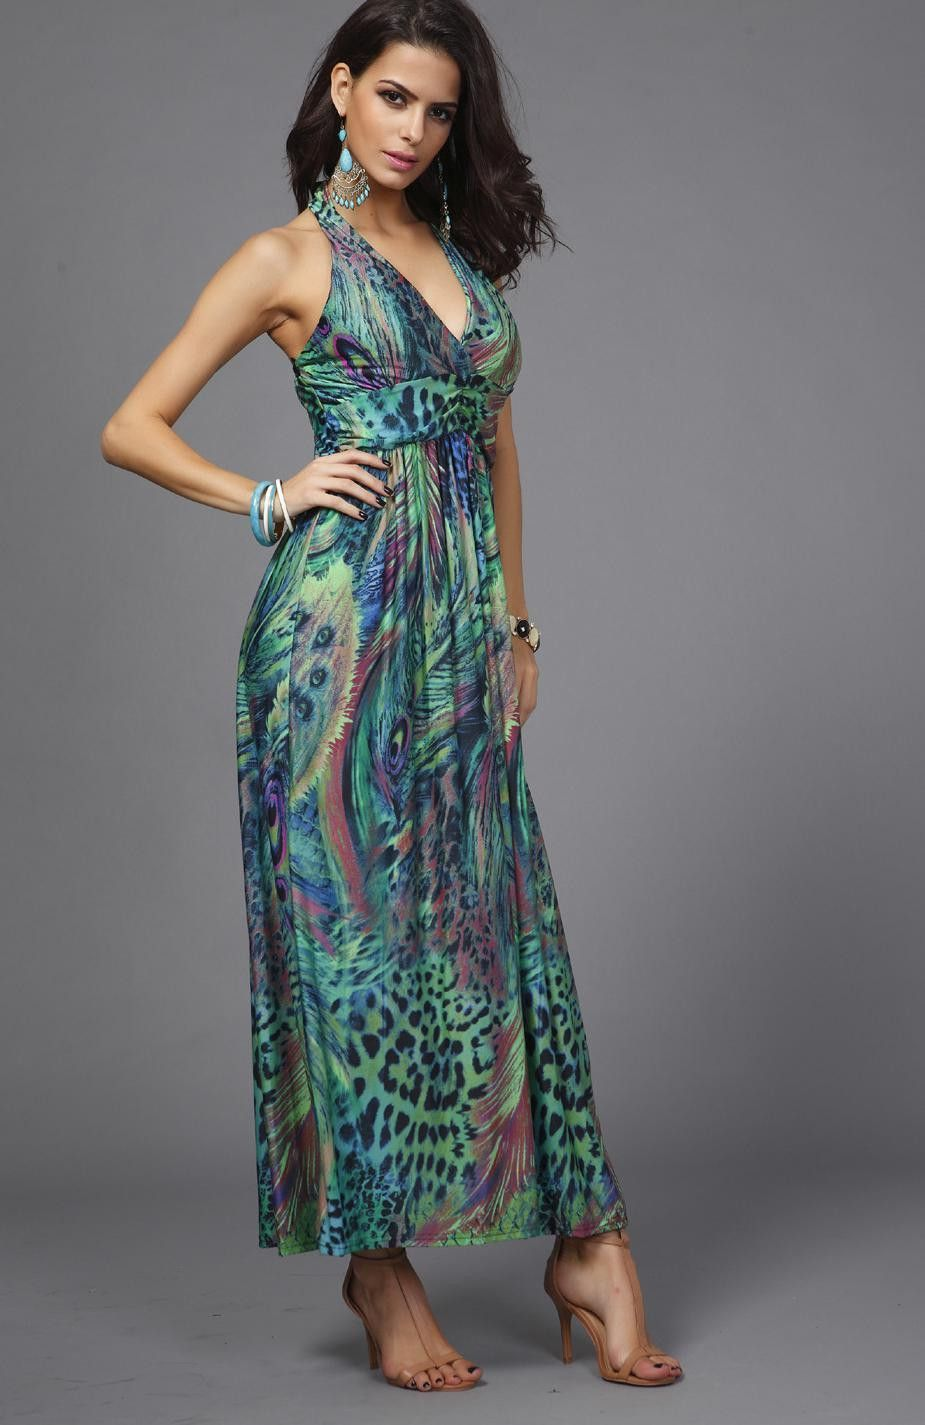 Milk Silk Chiffon Dresses Slim Waist Halter V-neck Peacock Printing Colorful Bohemia Sleeveless Long Beach Dress